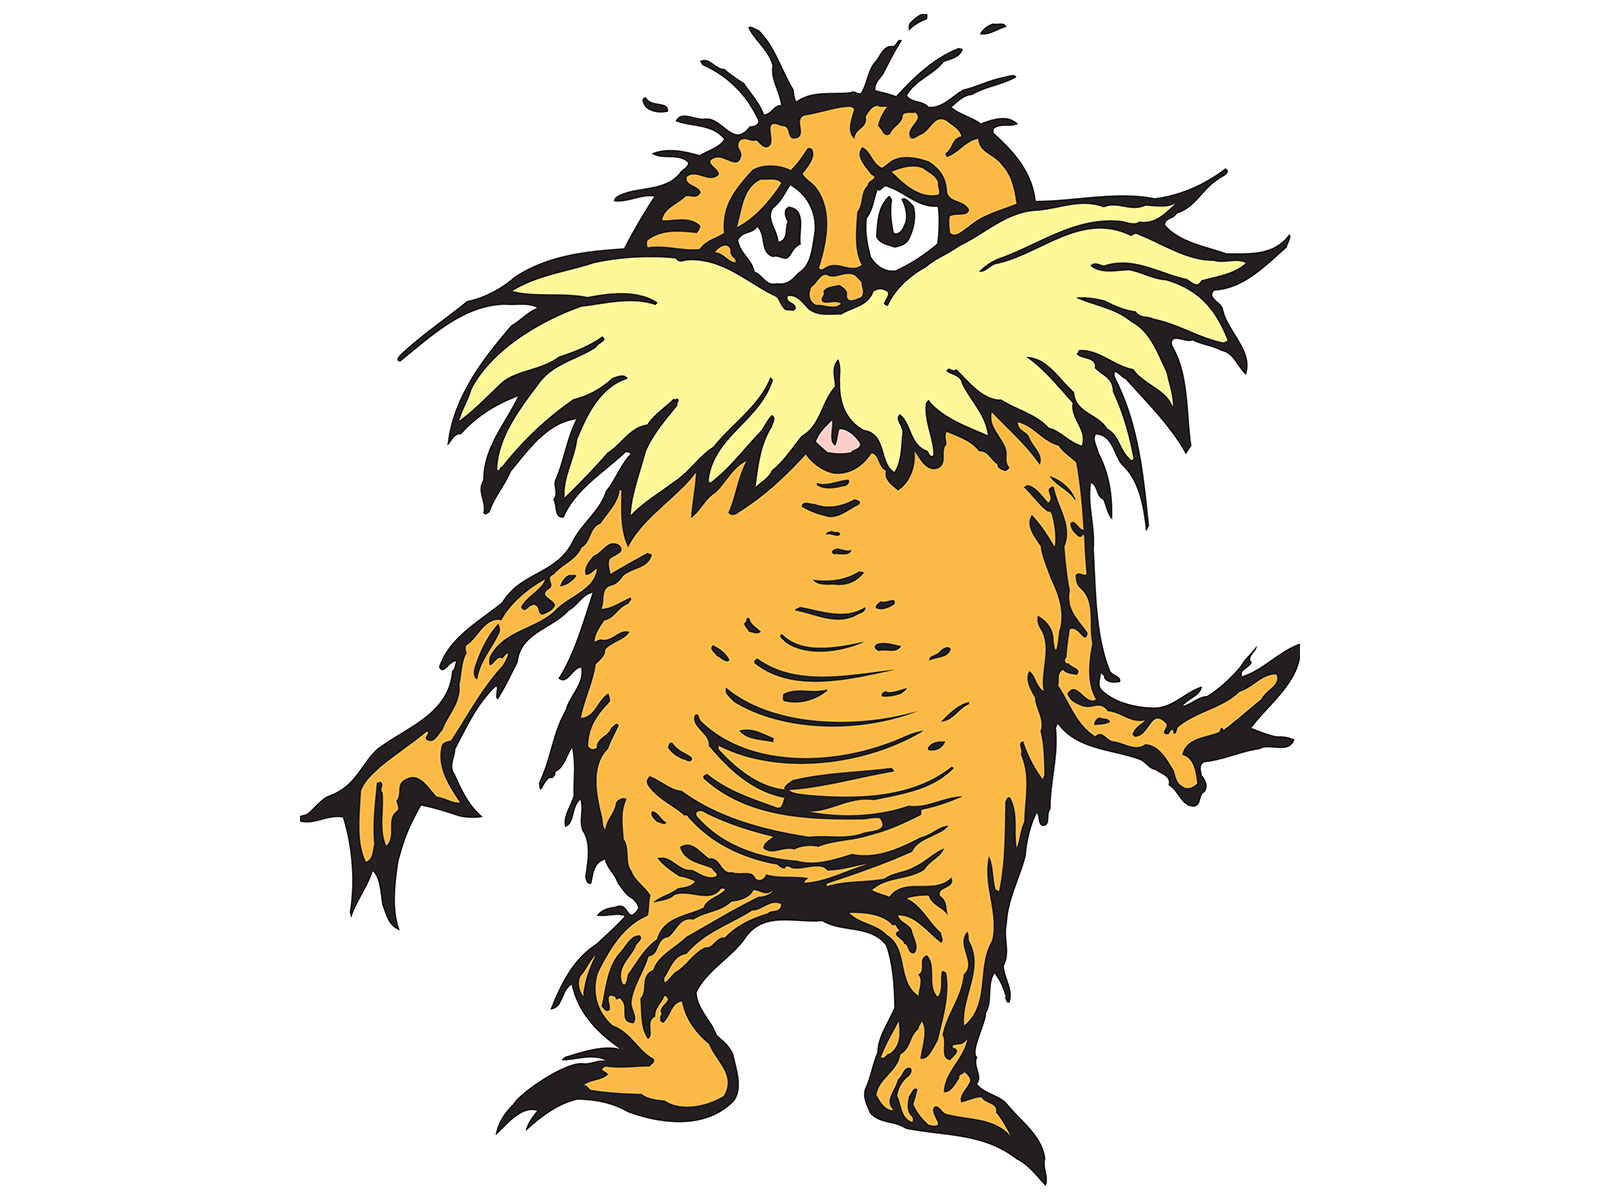 New Research Suggests Dr. Seuss Modeled the Lorax on This.